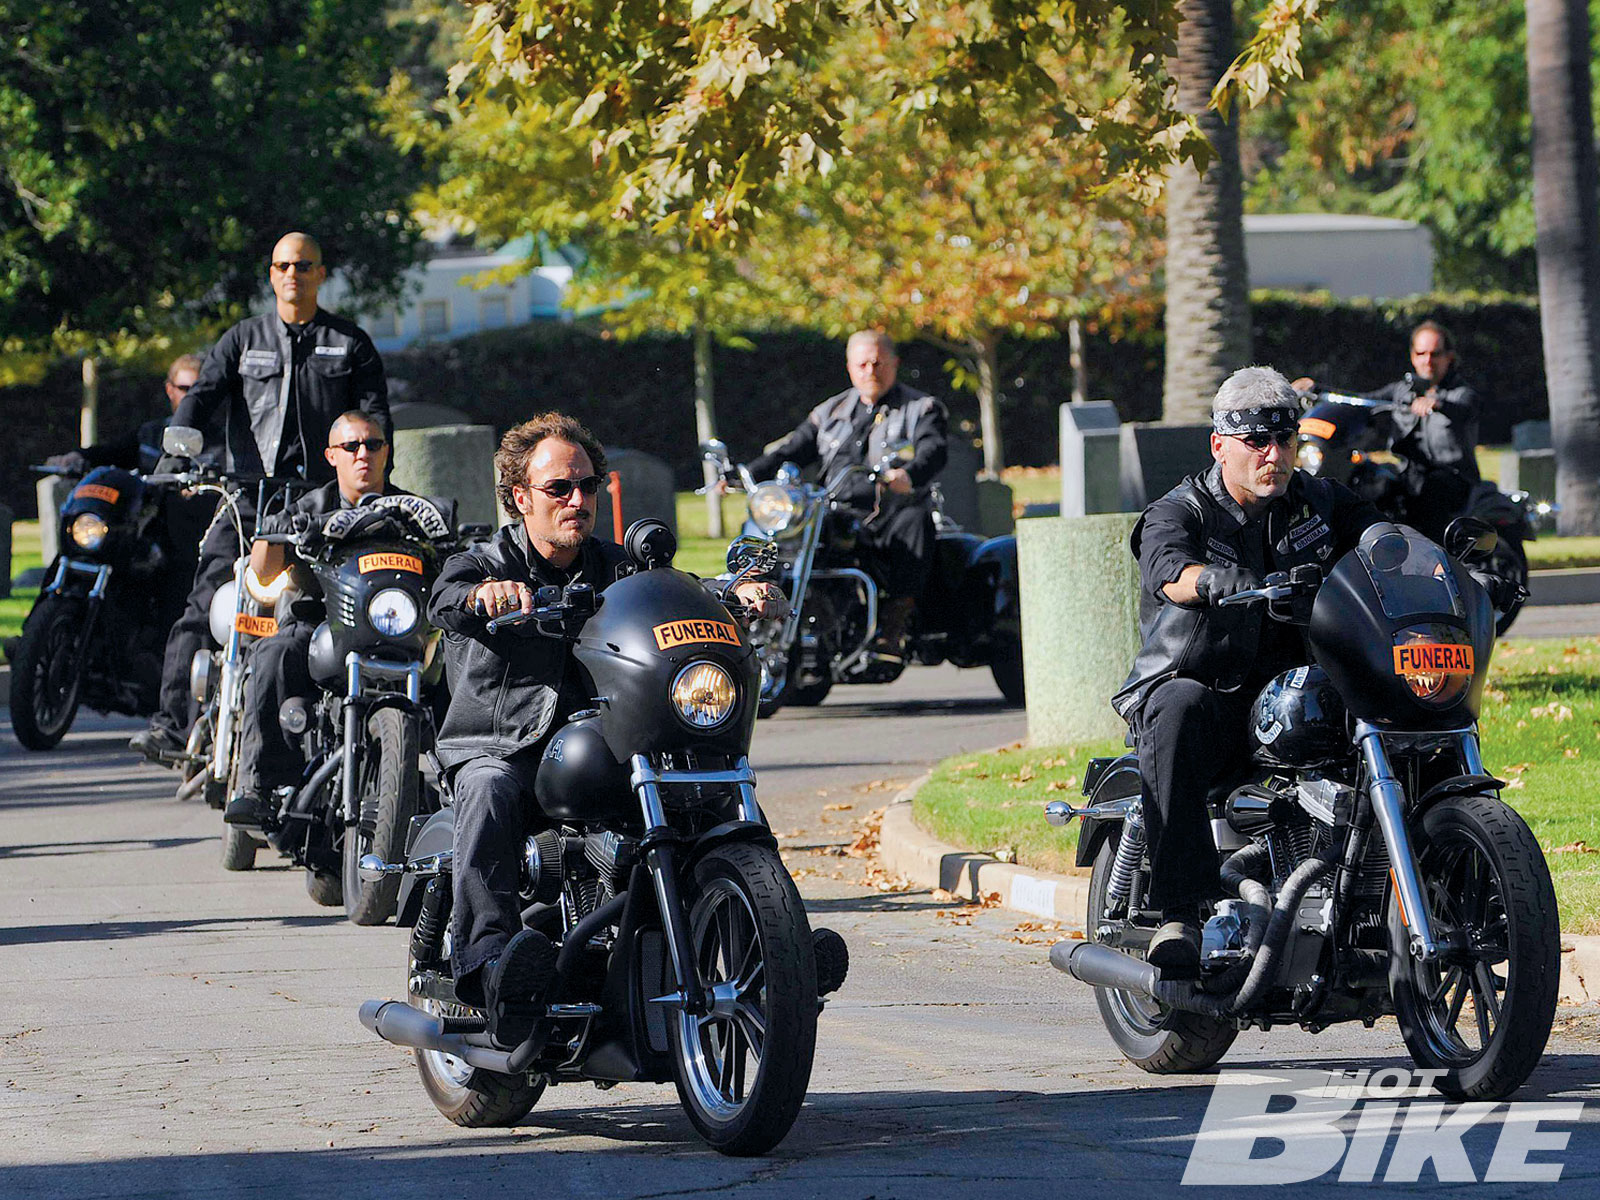 Sons Of Anarchy Merchandise For Sale | Sons Of Anarchy Bikes | The Bikes Of Soa